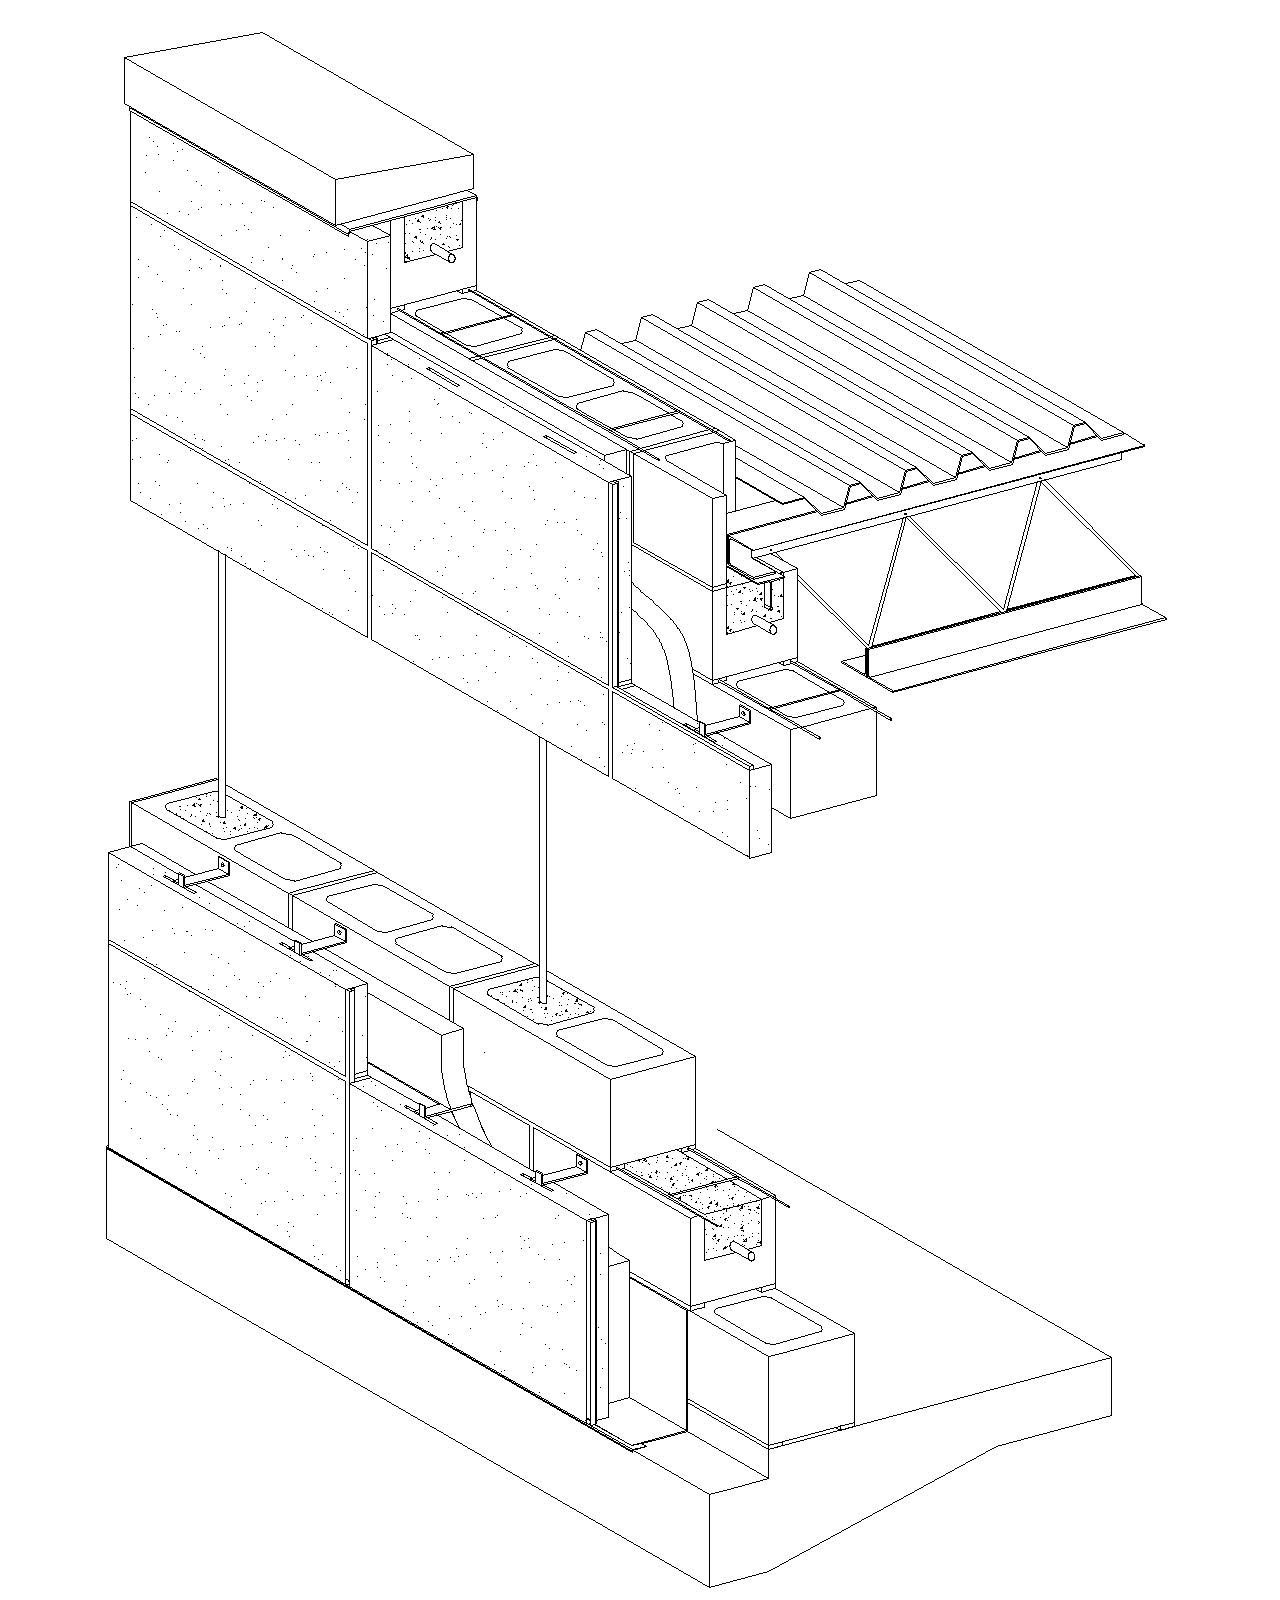 Architectural Section Drawing At Getdrawings